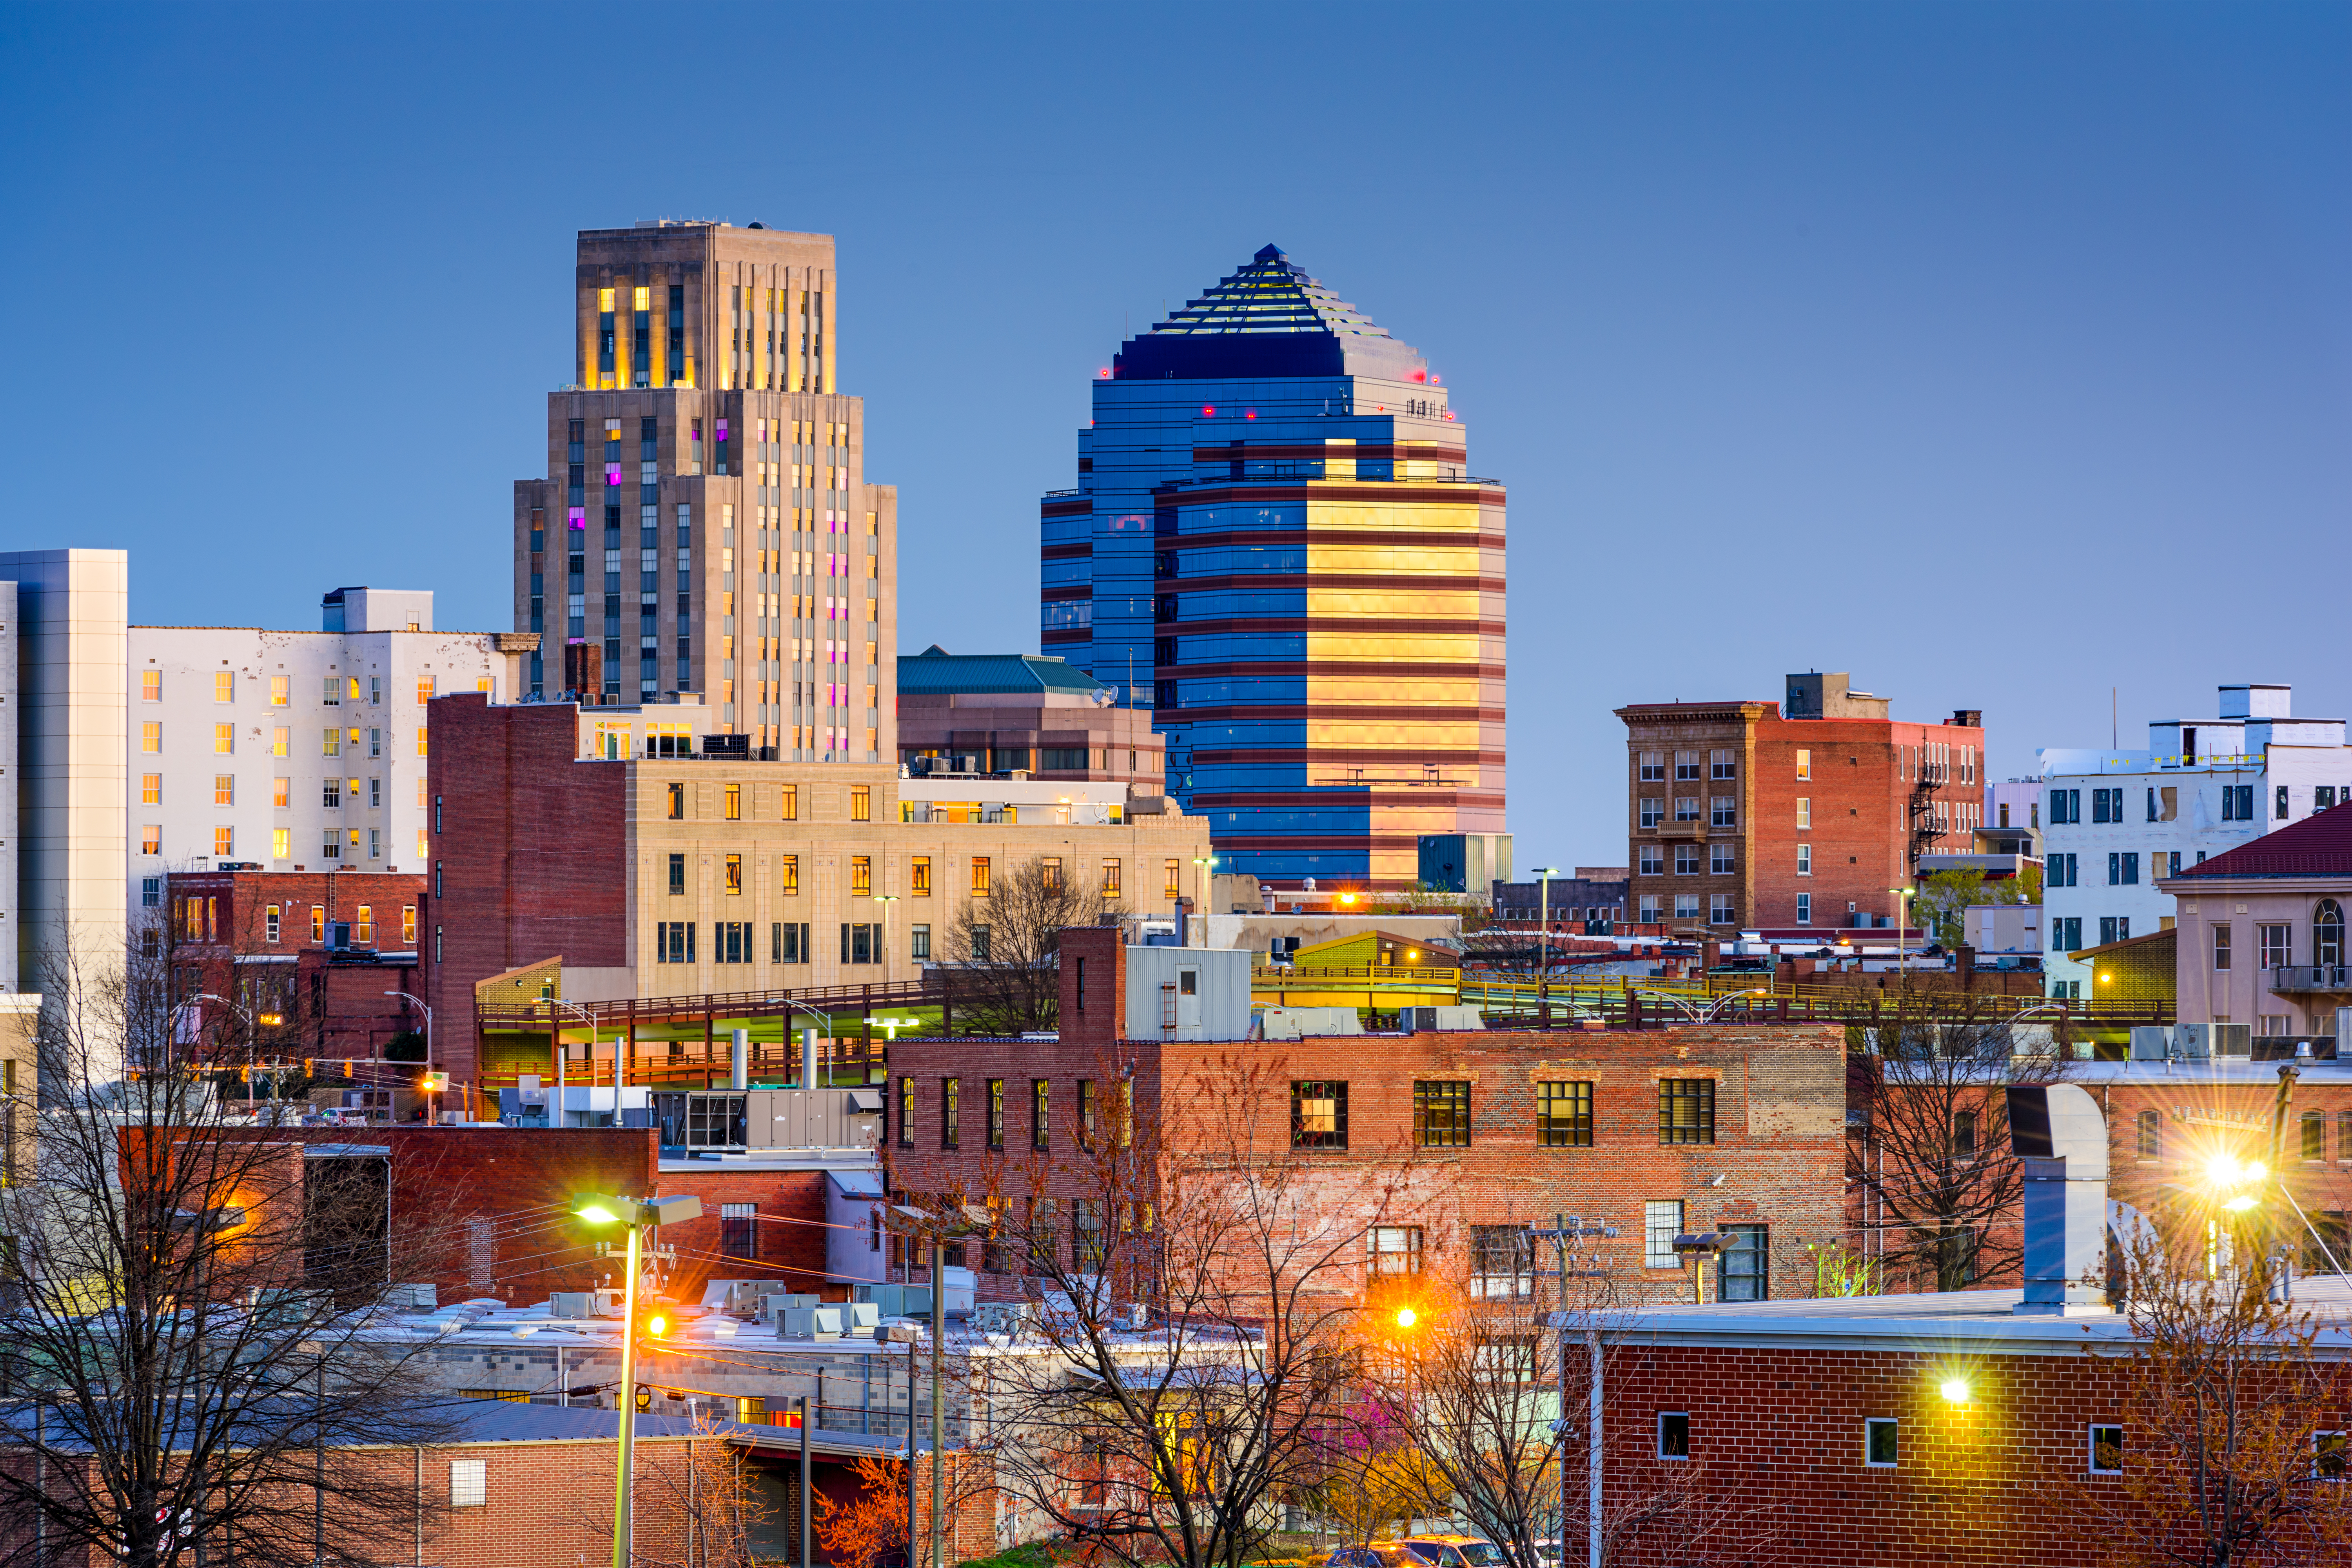 10 rising U.S. cities where homeownership is affordable